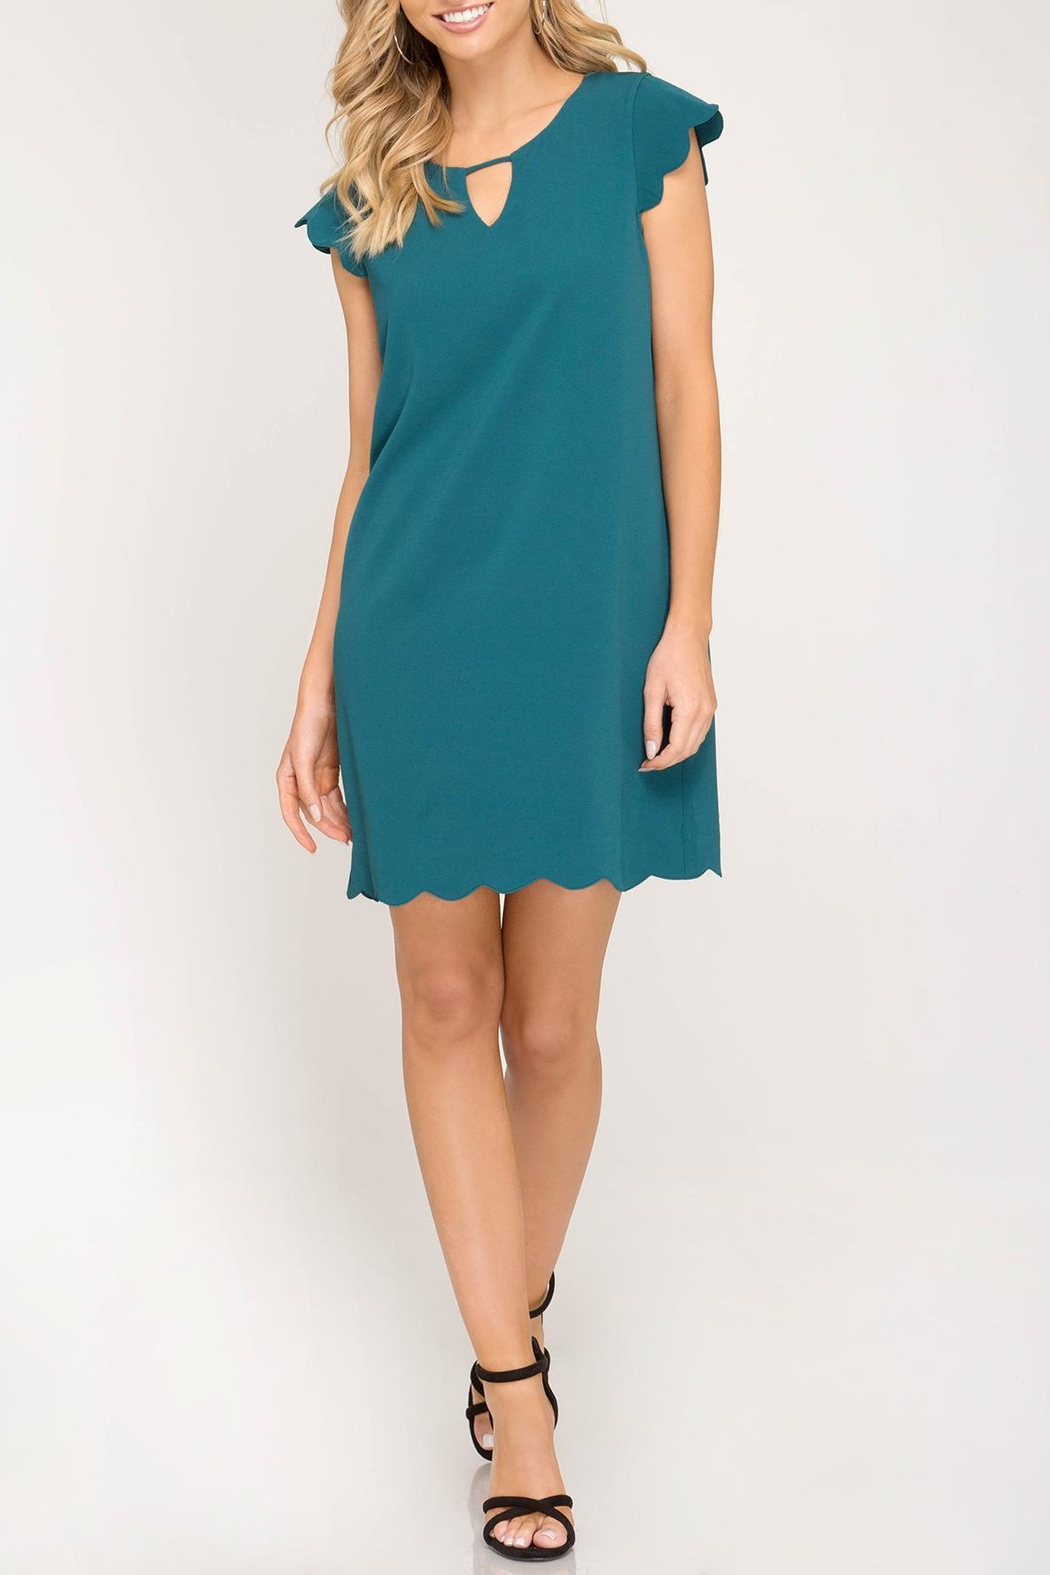 She + Sky Scalloped Hem Dress - Main Image